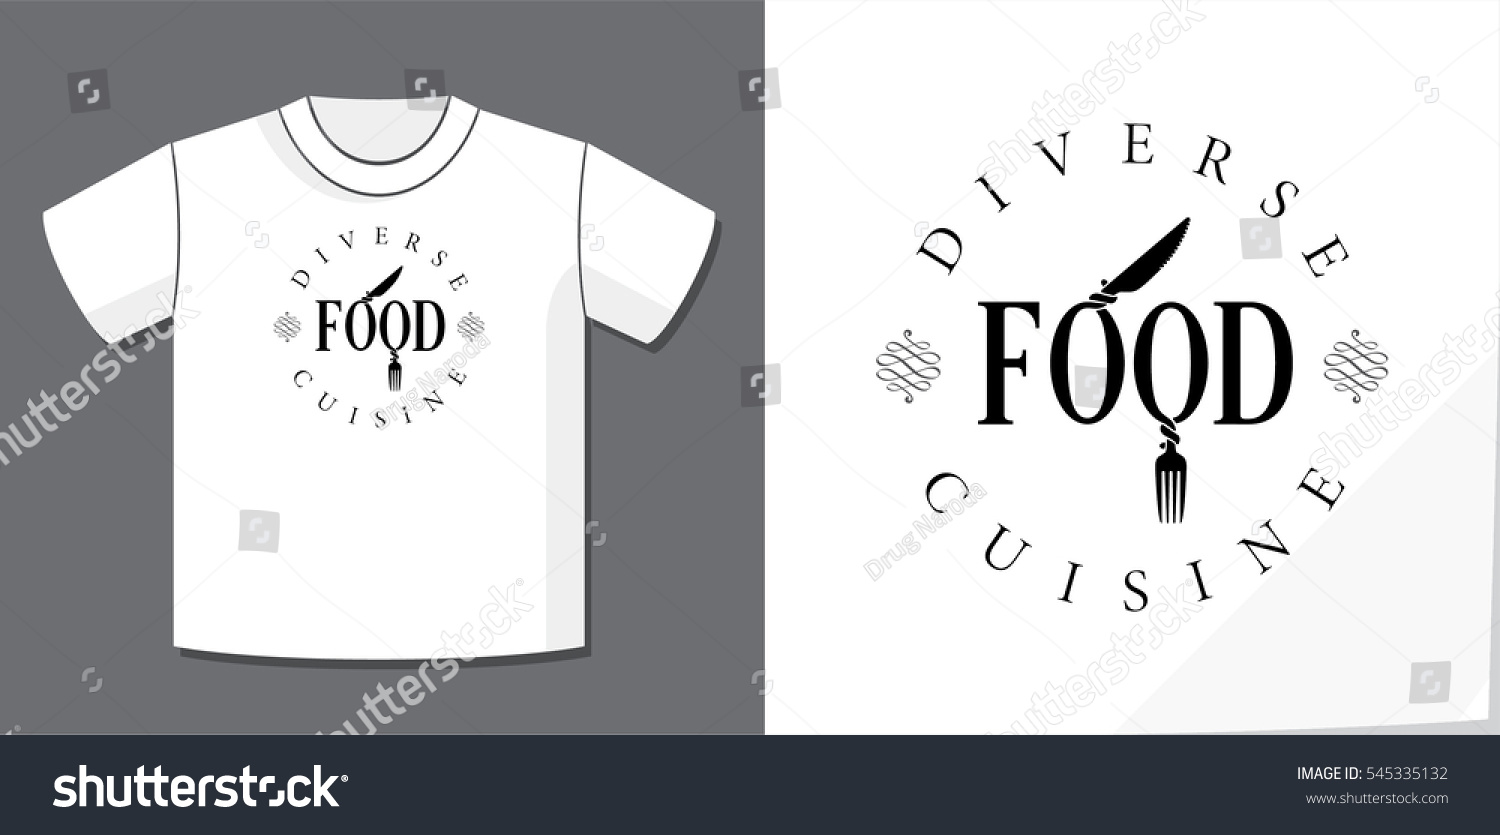 Authentic lettering logo design word food stock vector 545335132 authentic lettering logo design of word food with knife and fork as male and female symbols biocorpaavc Images